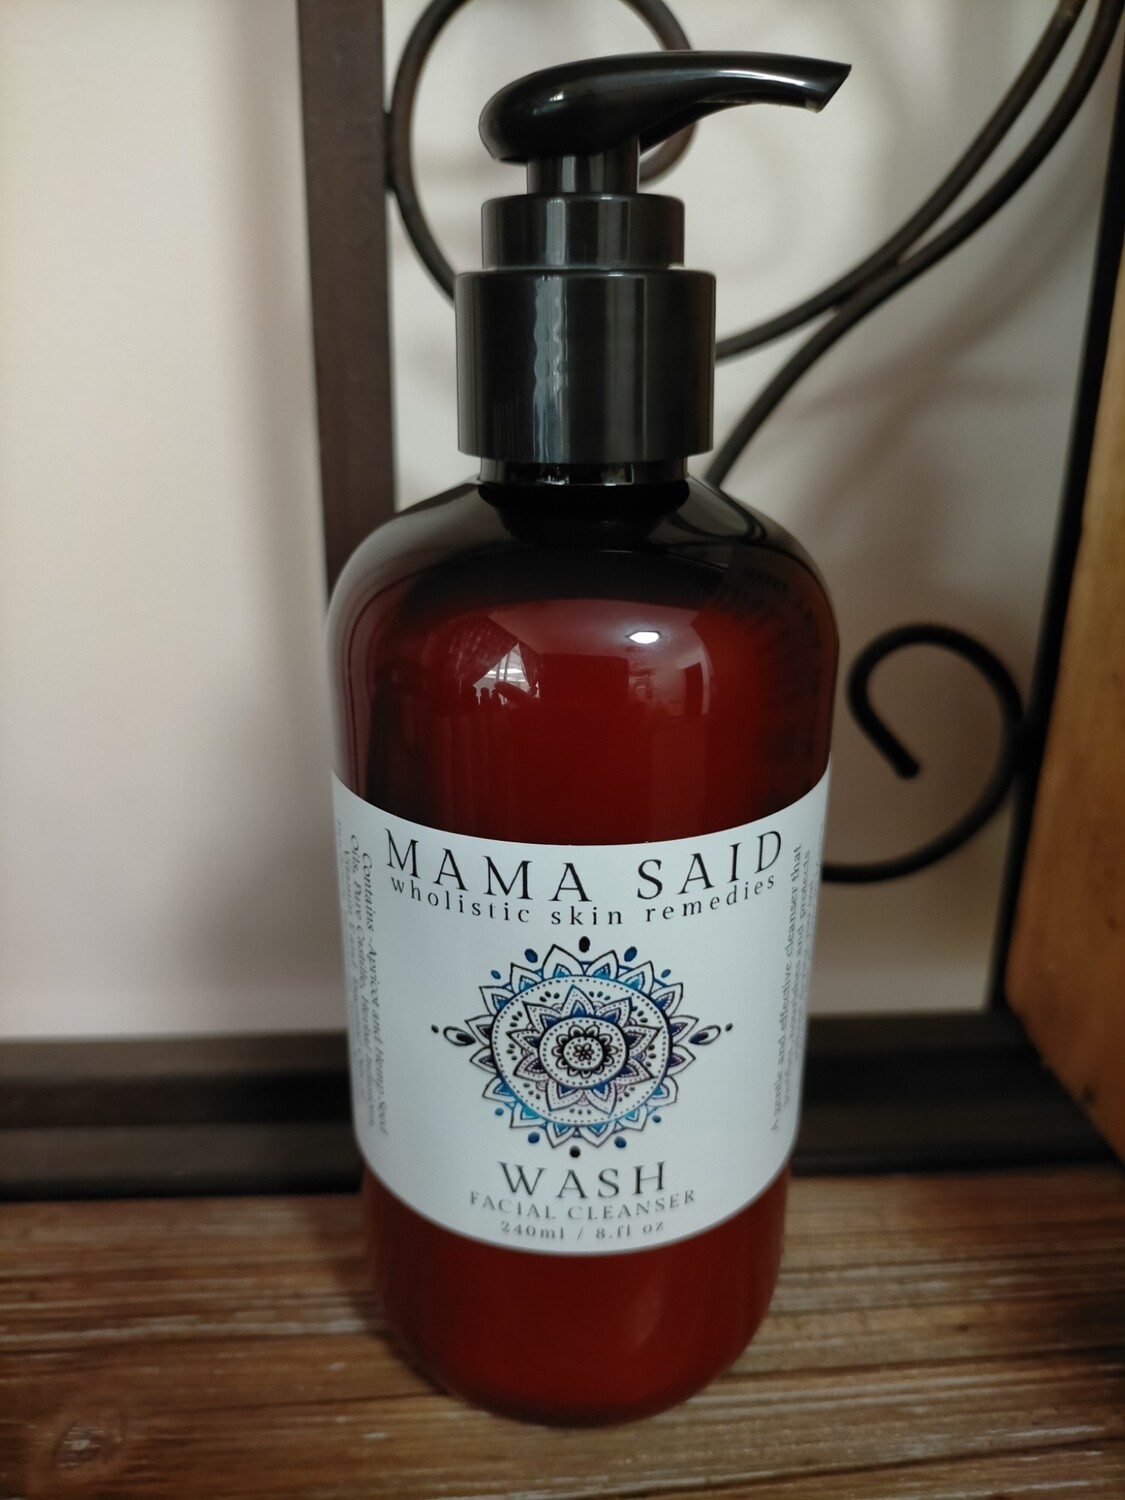 Wash - Face Cleanser - 240ml